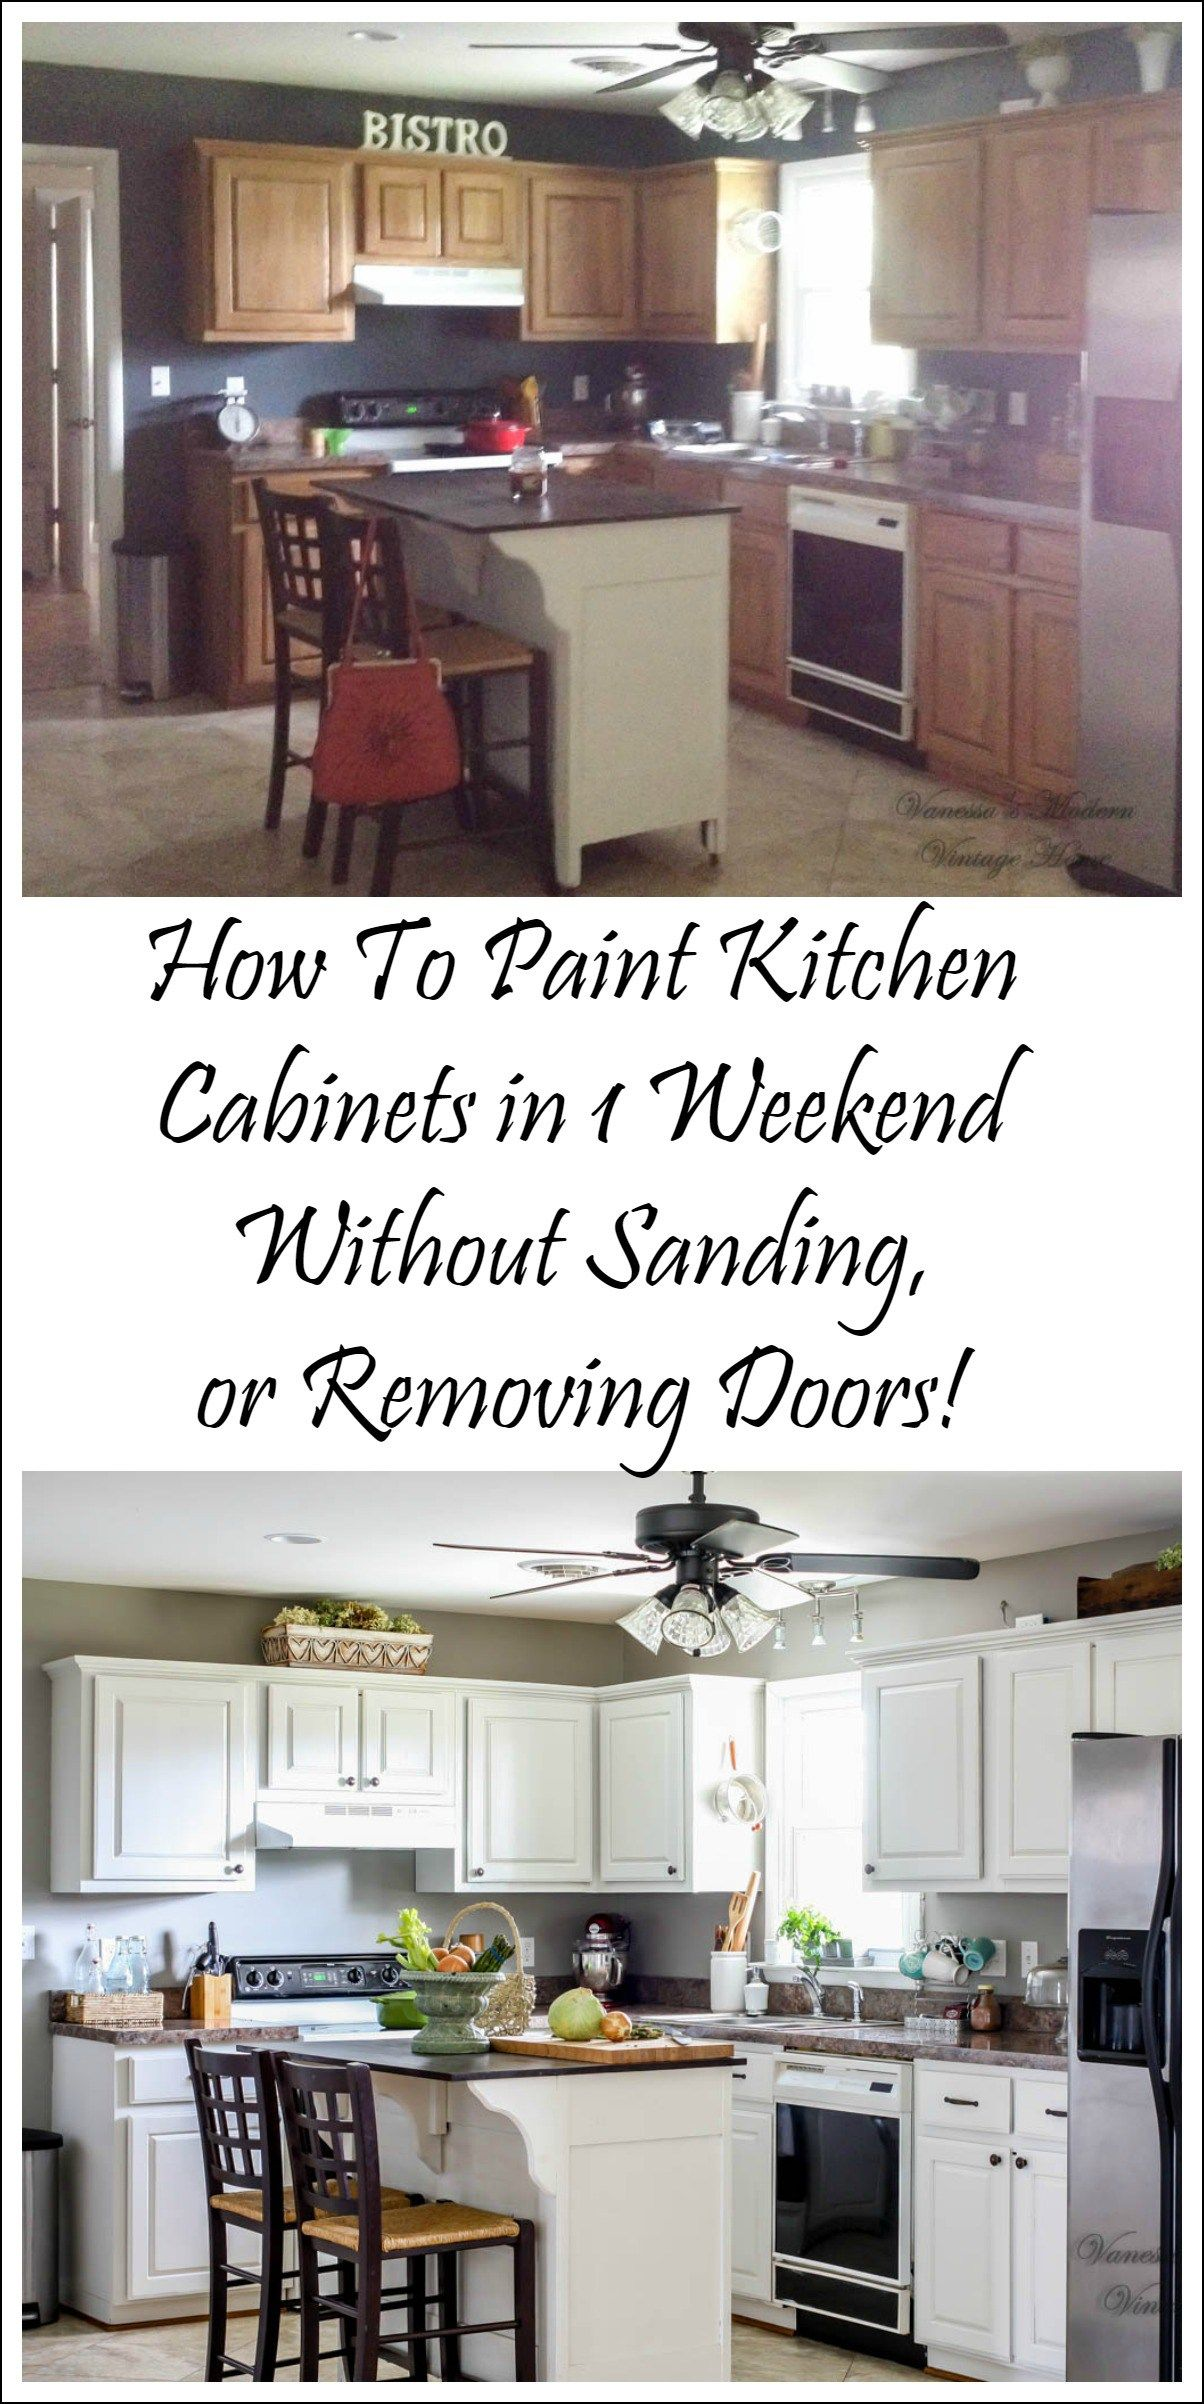 How I Painted My Kitchen Cabinets Without Removing The Doors ...